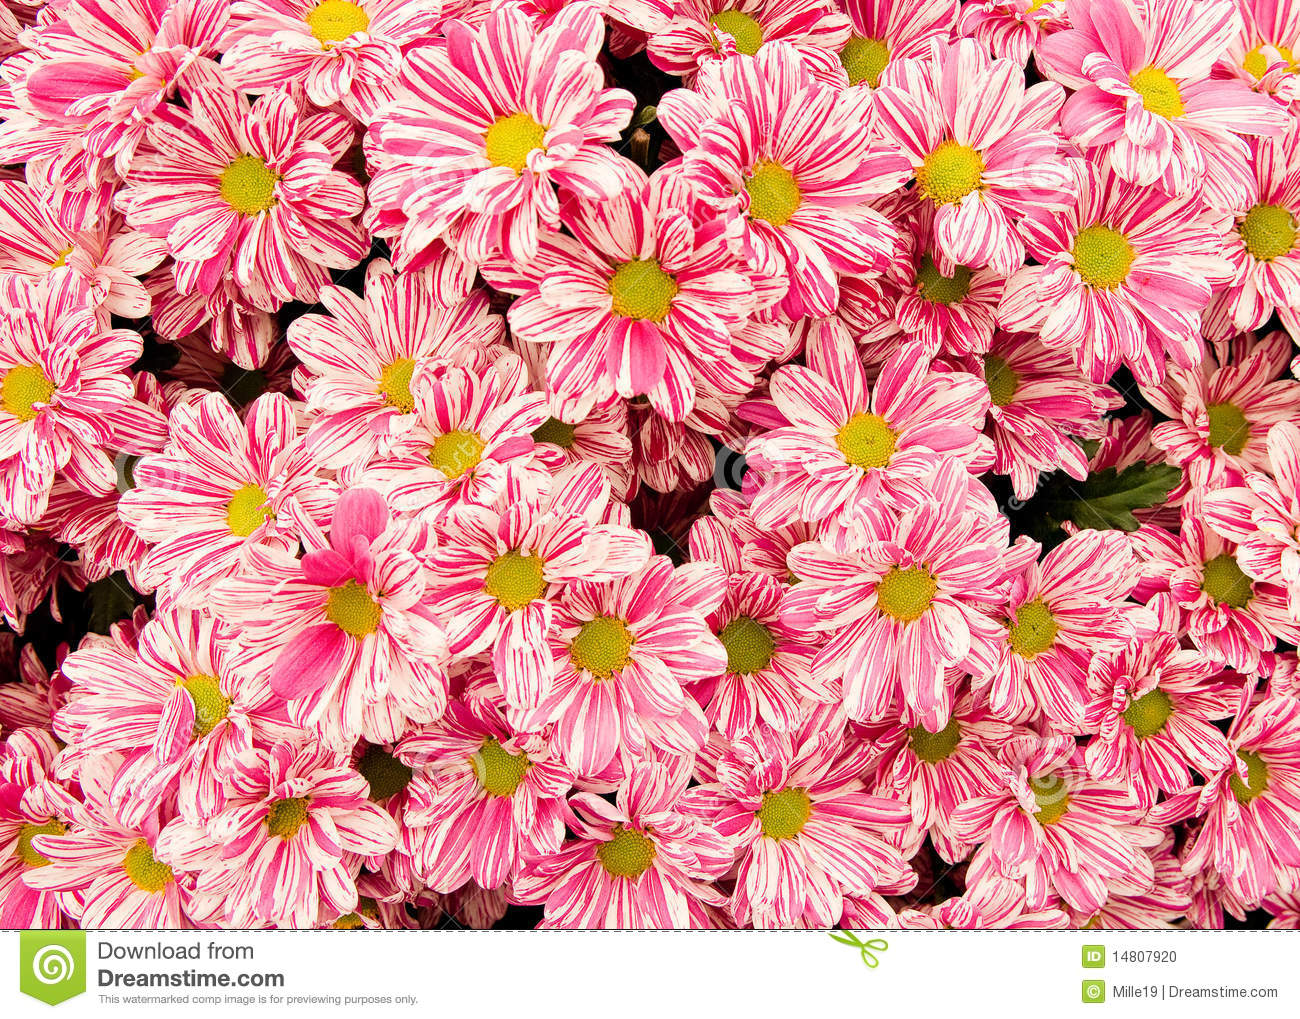 Pink and white flower background stock photo image of pink and white flower background mightylinksfo